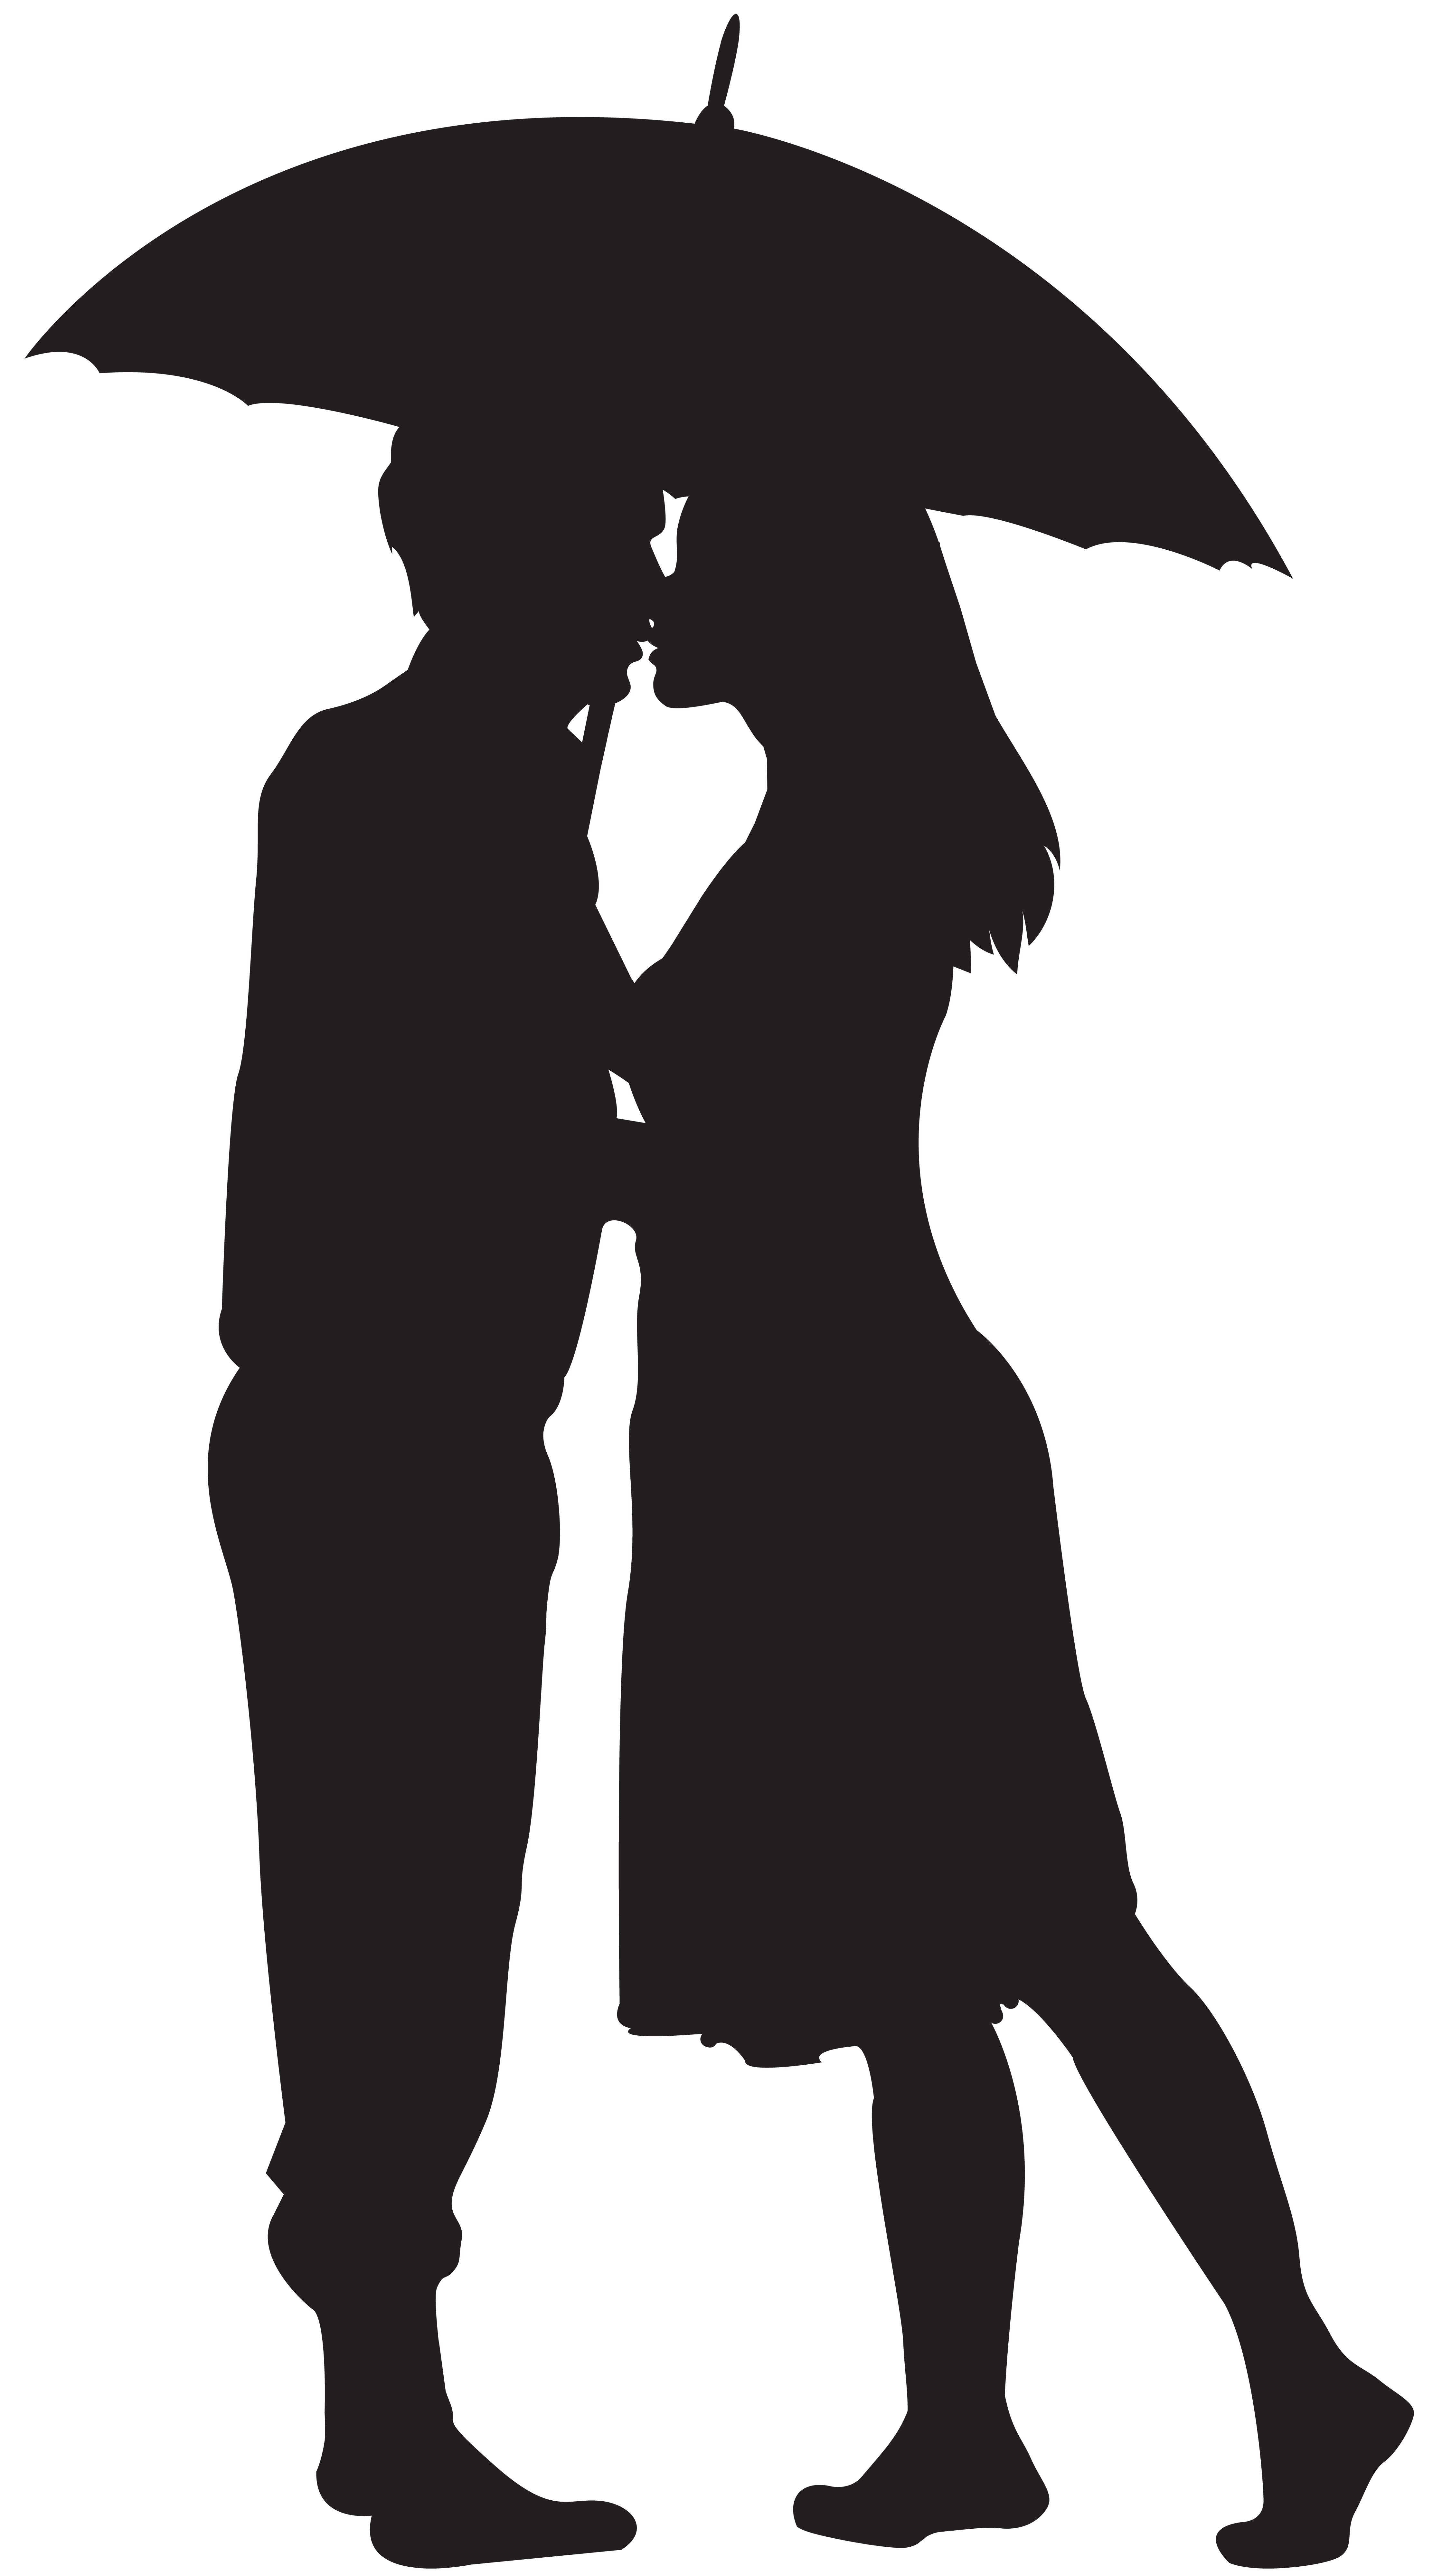 Clipart halloween couple jpg freeuse library Loving Couple Silhouette PNG Clip Art Image | Gallery Yopriceville ... jpg freeuse library